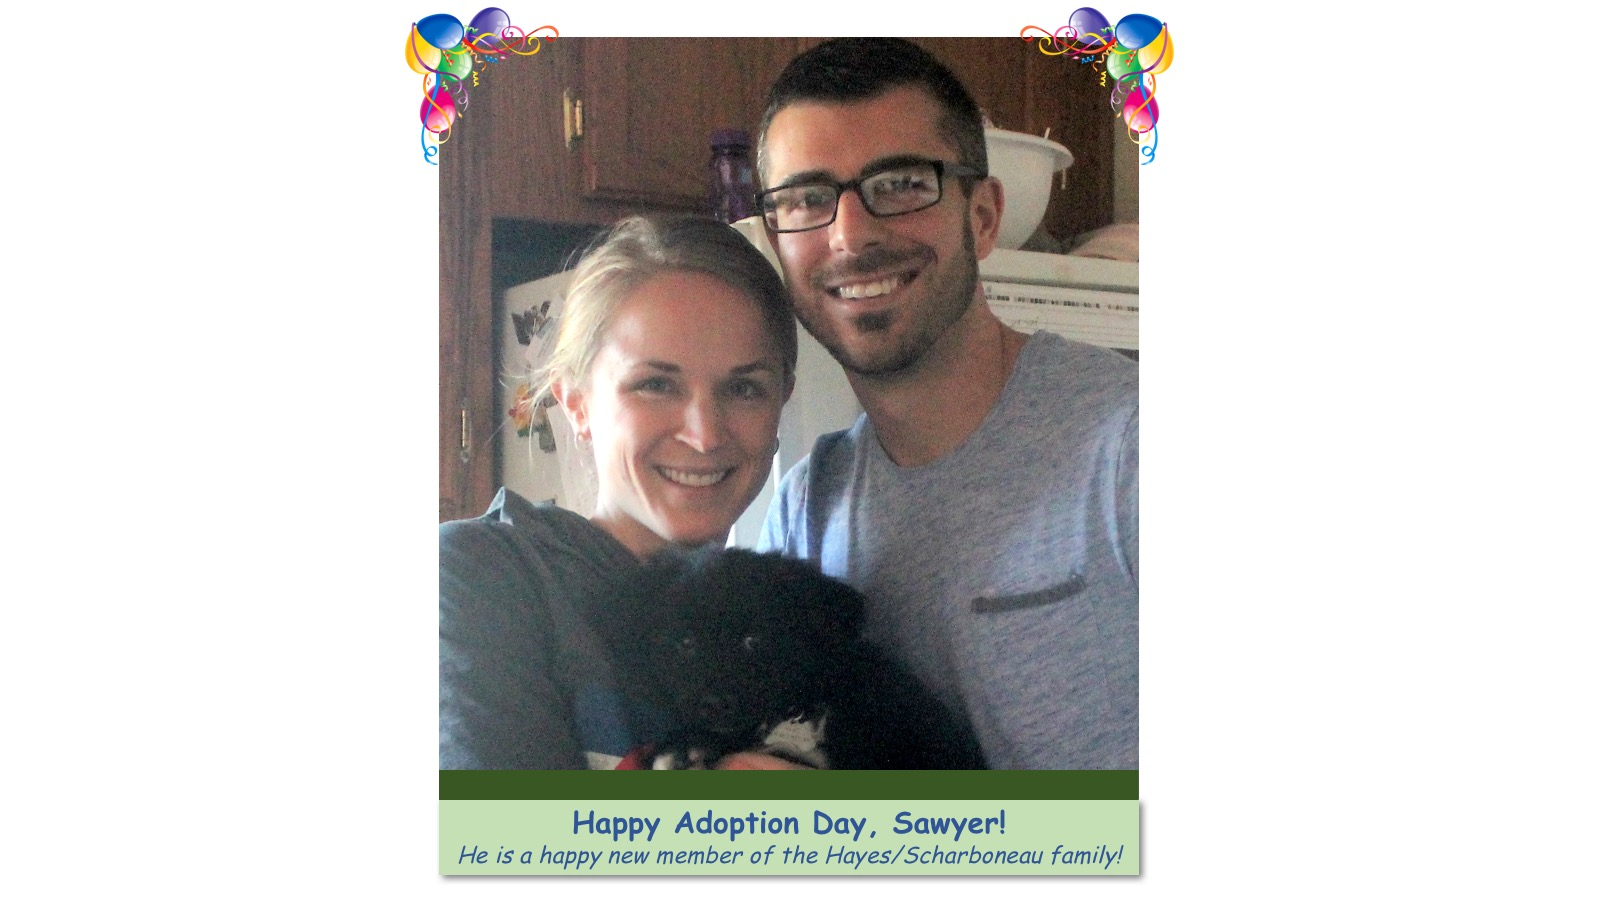 Sawyer_Adoption_photo.jpg